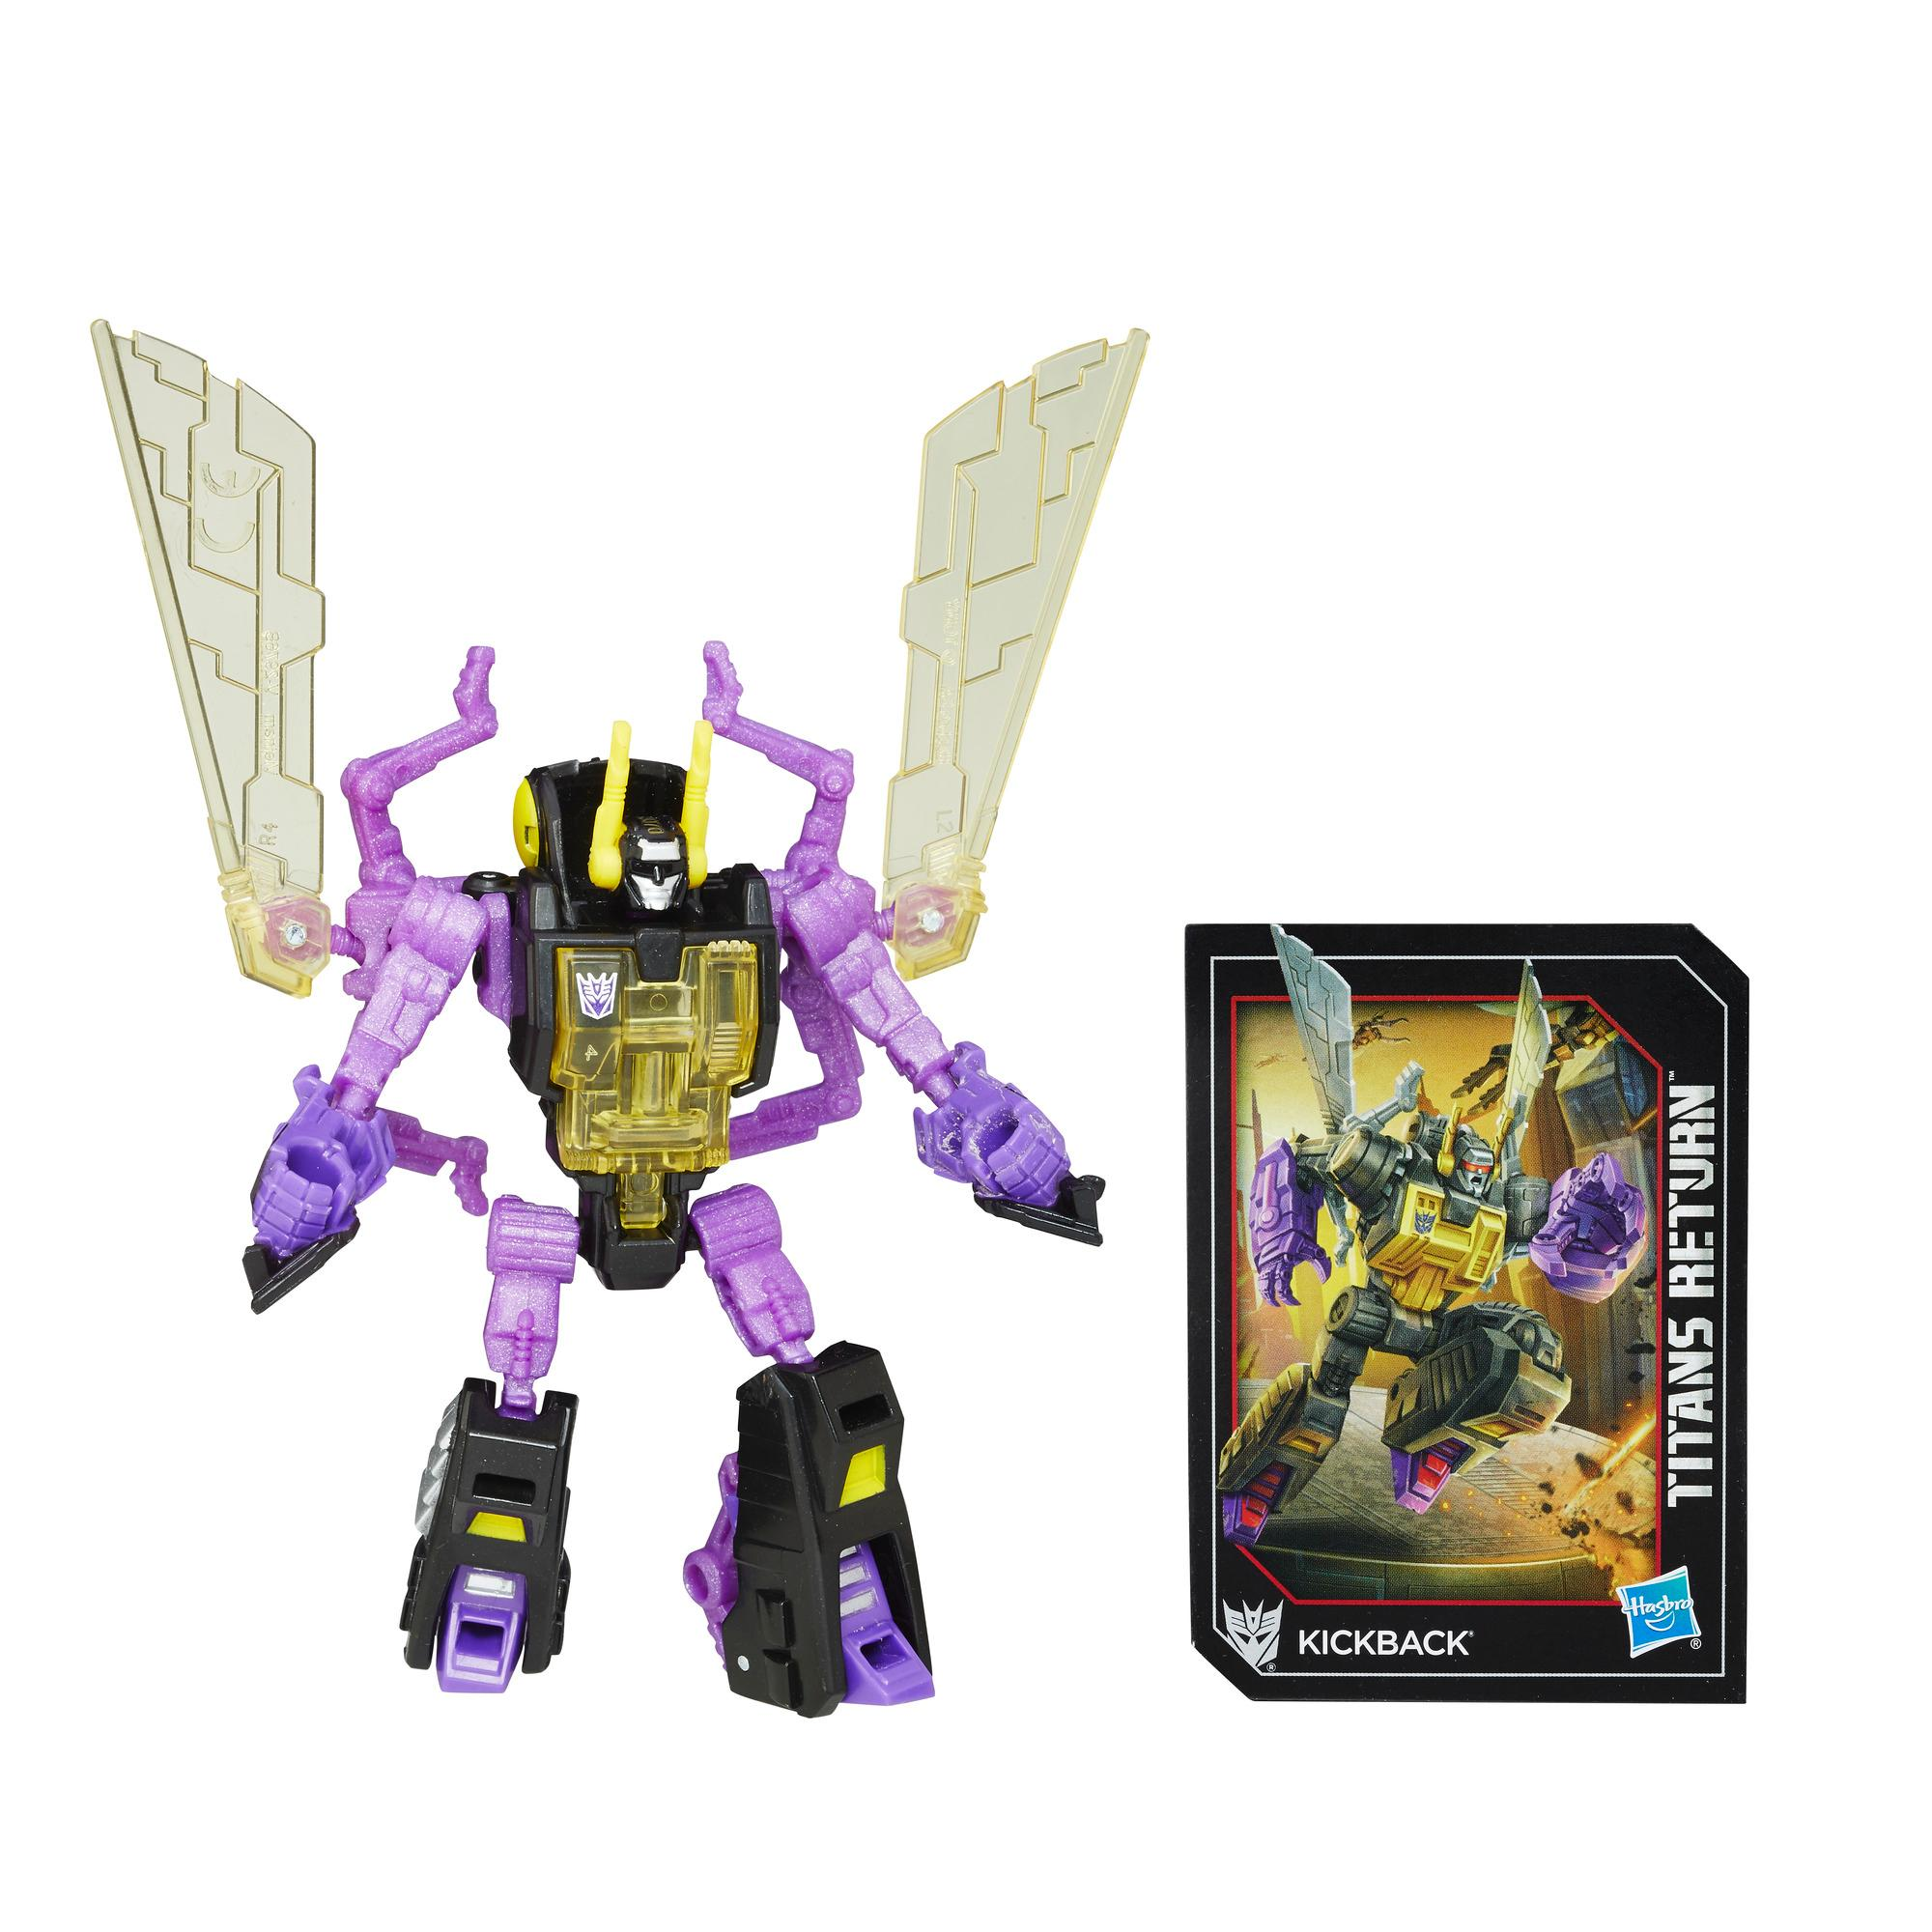 Transformers Generations Titans Return Legends Class Kickback